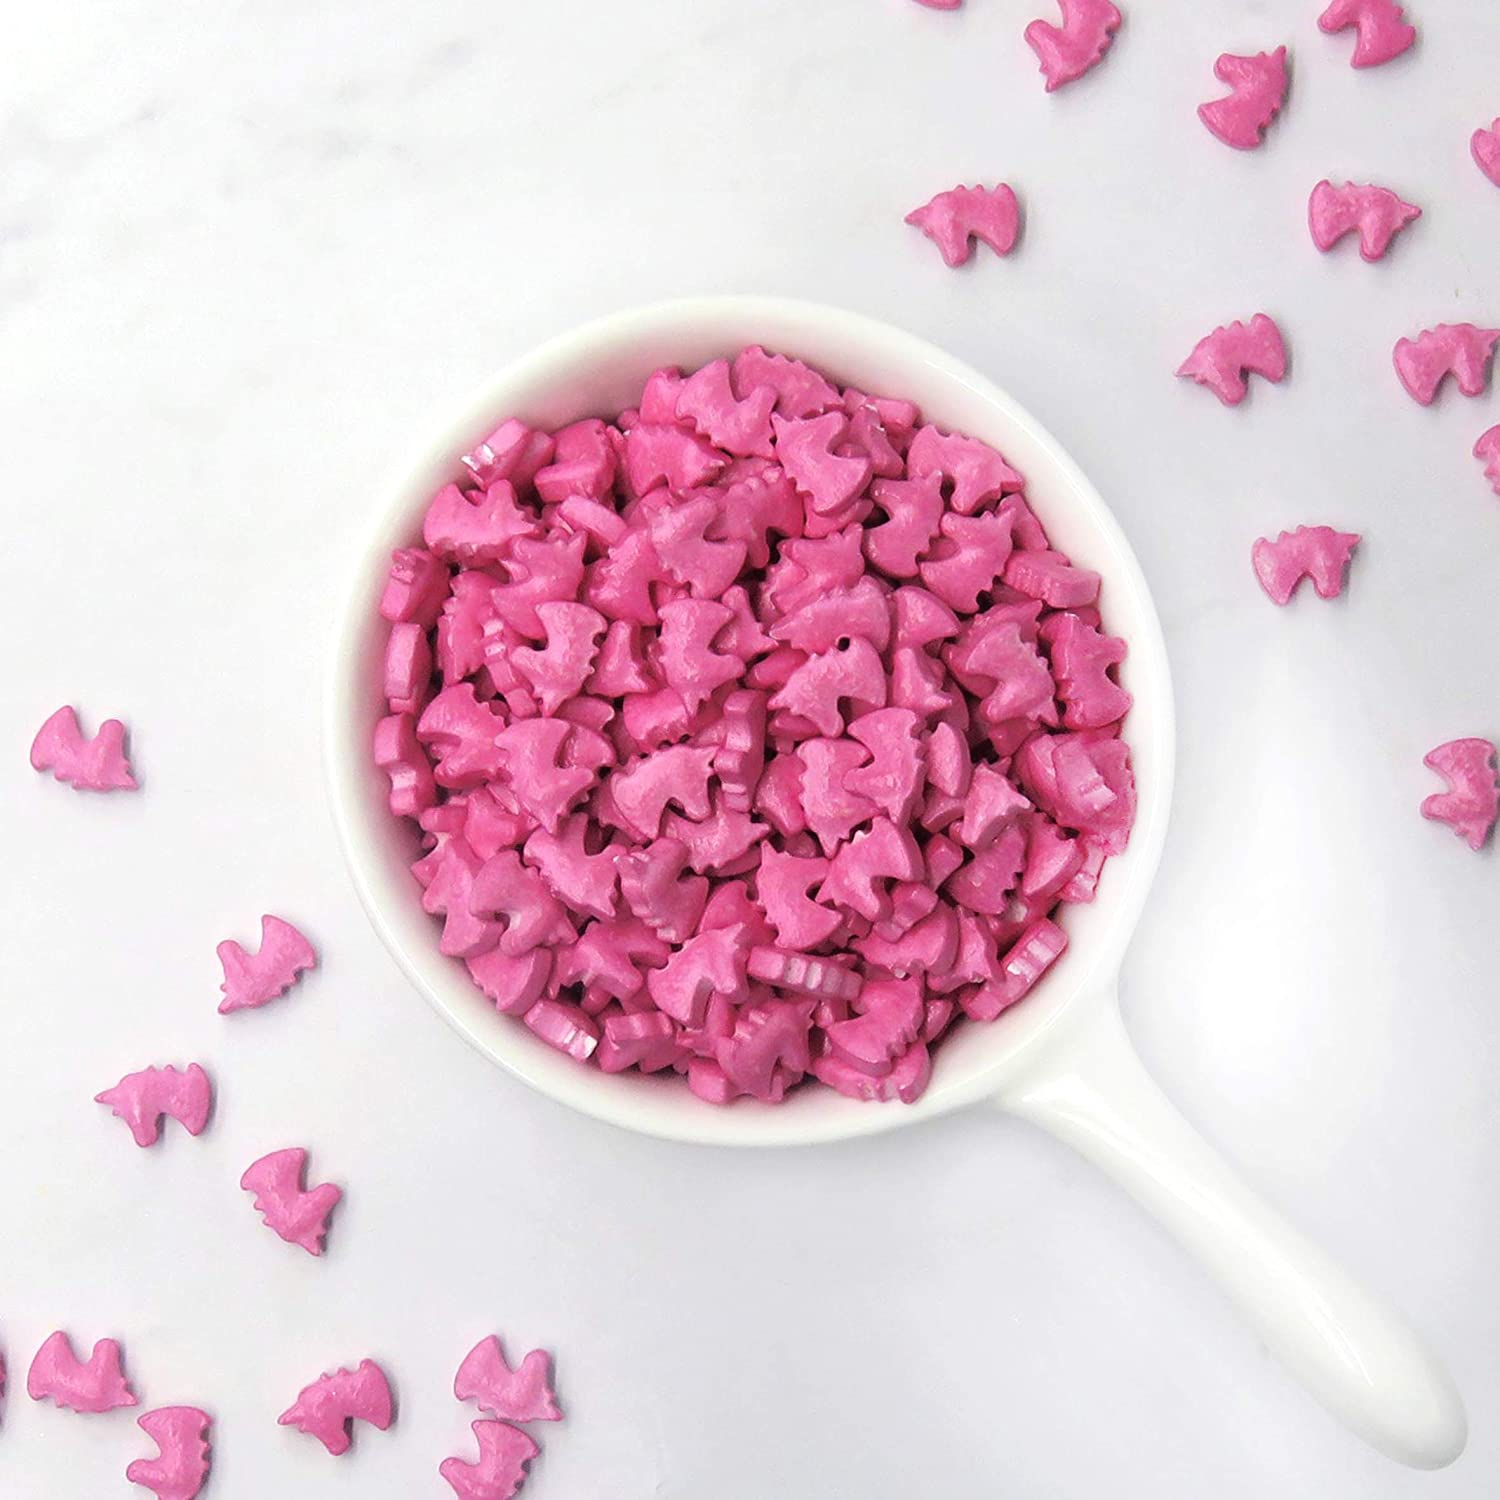 Whimsical Pink Unicorn Edible 5 New product Limited price sale lbs. Bulk Sprinkles